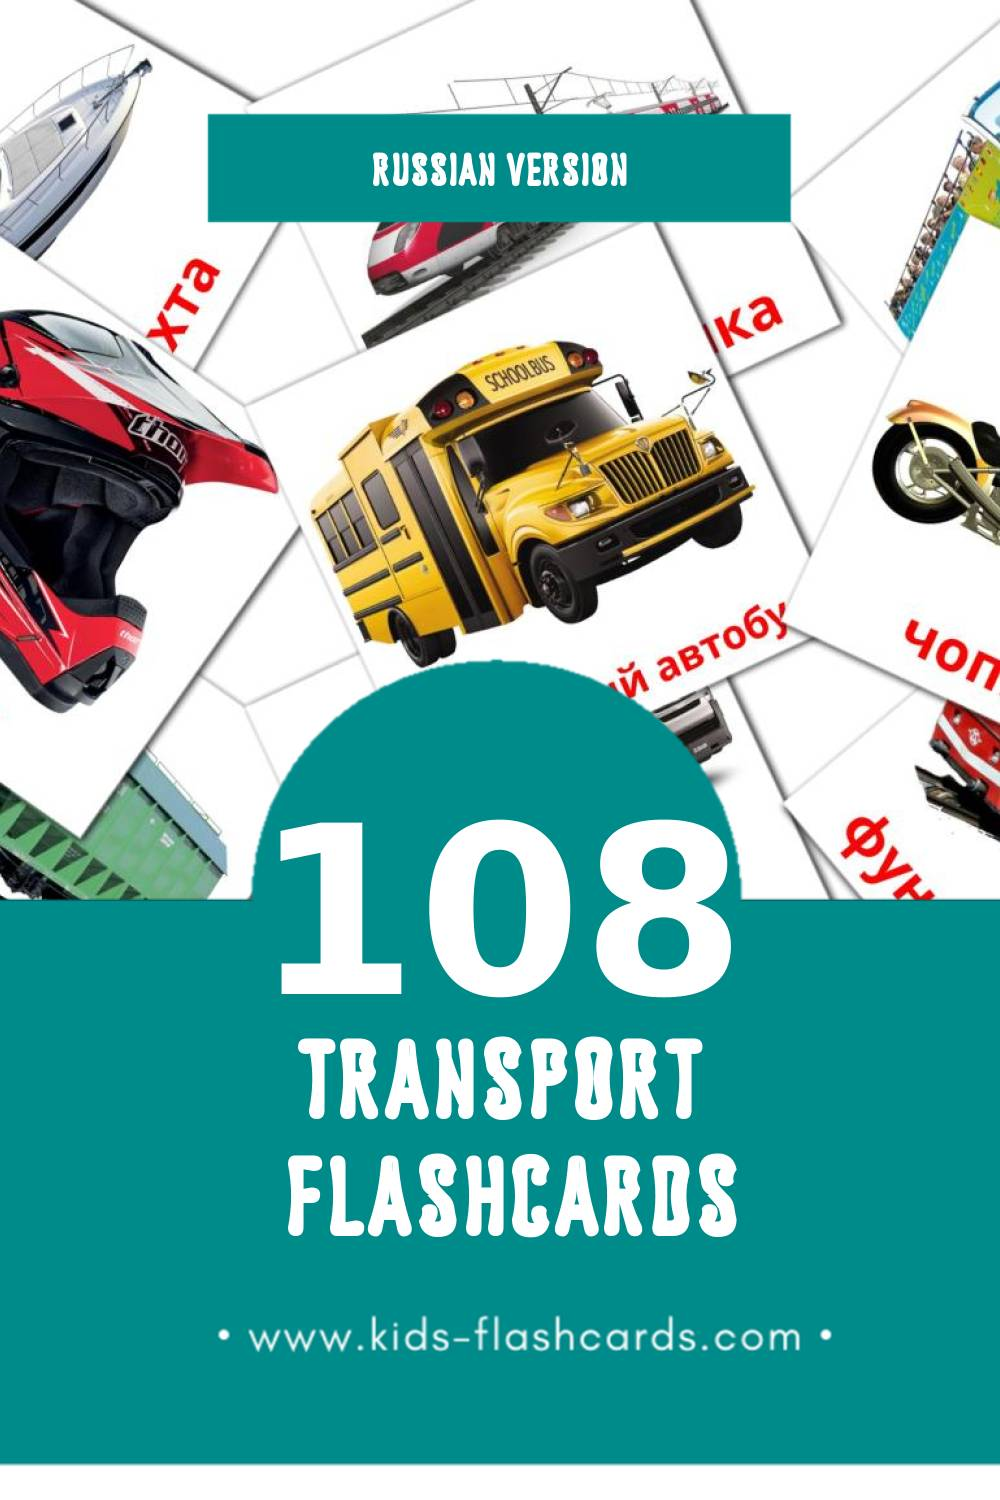 Visual Транспорт Flashcards for Toddlers (108 cards in Russian)